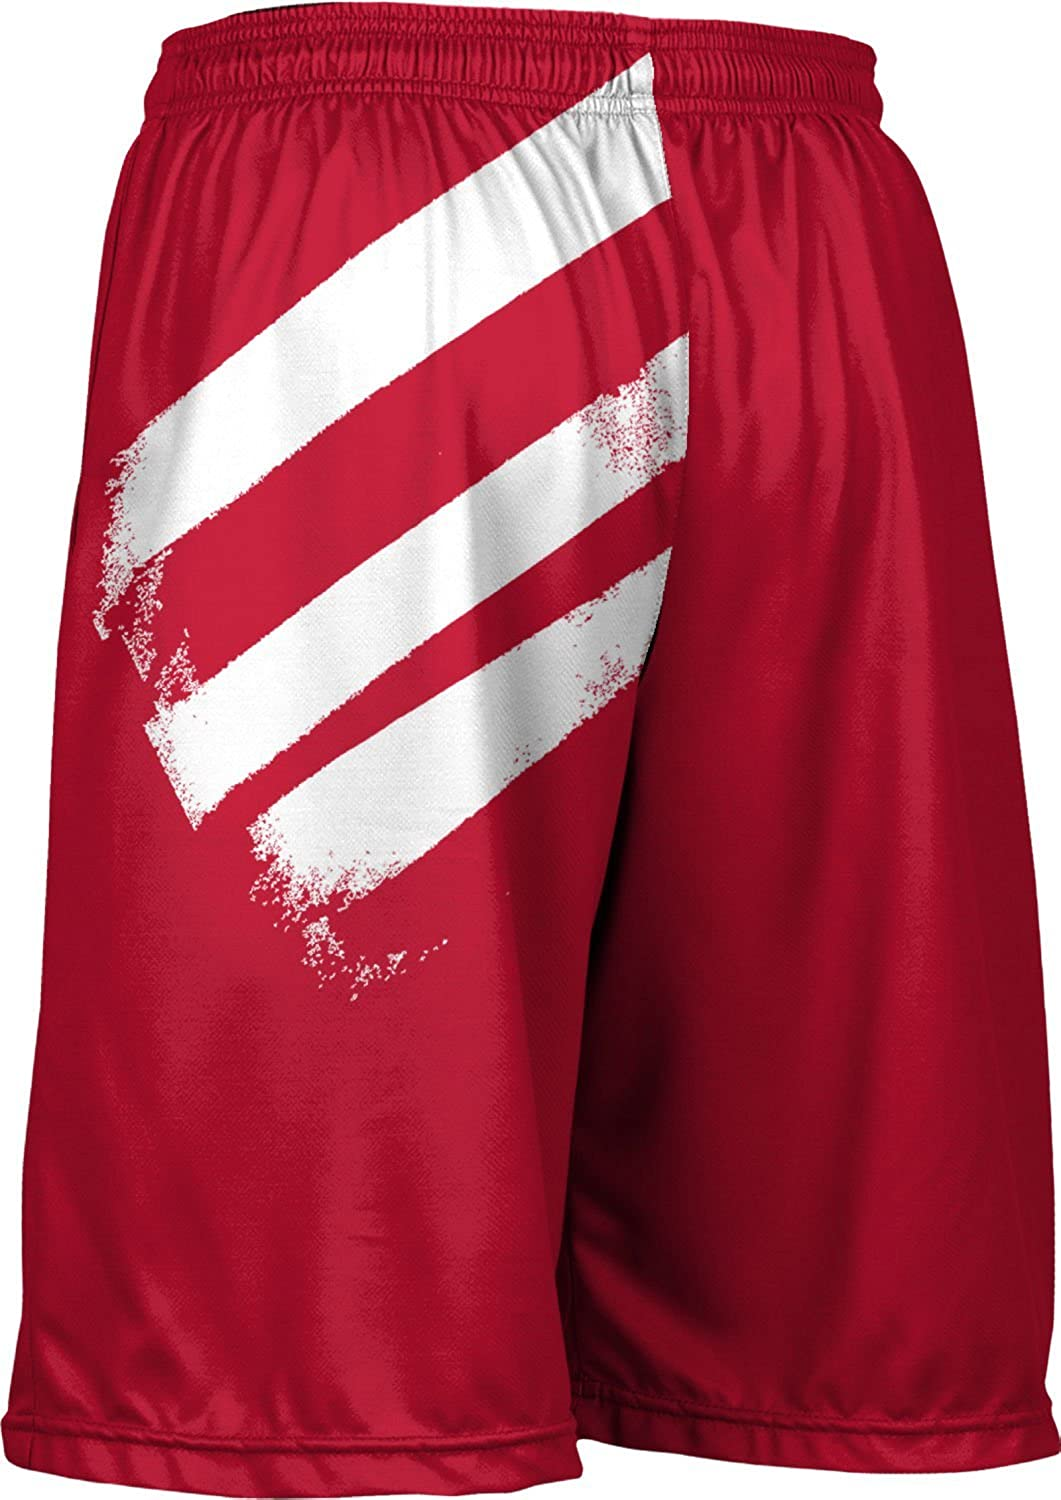 Structure ProSphere Nicholls State University Mens 11 Knit Short